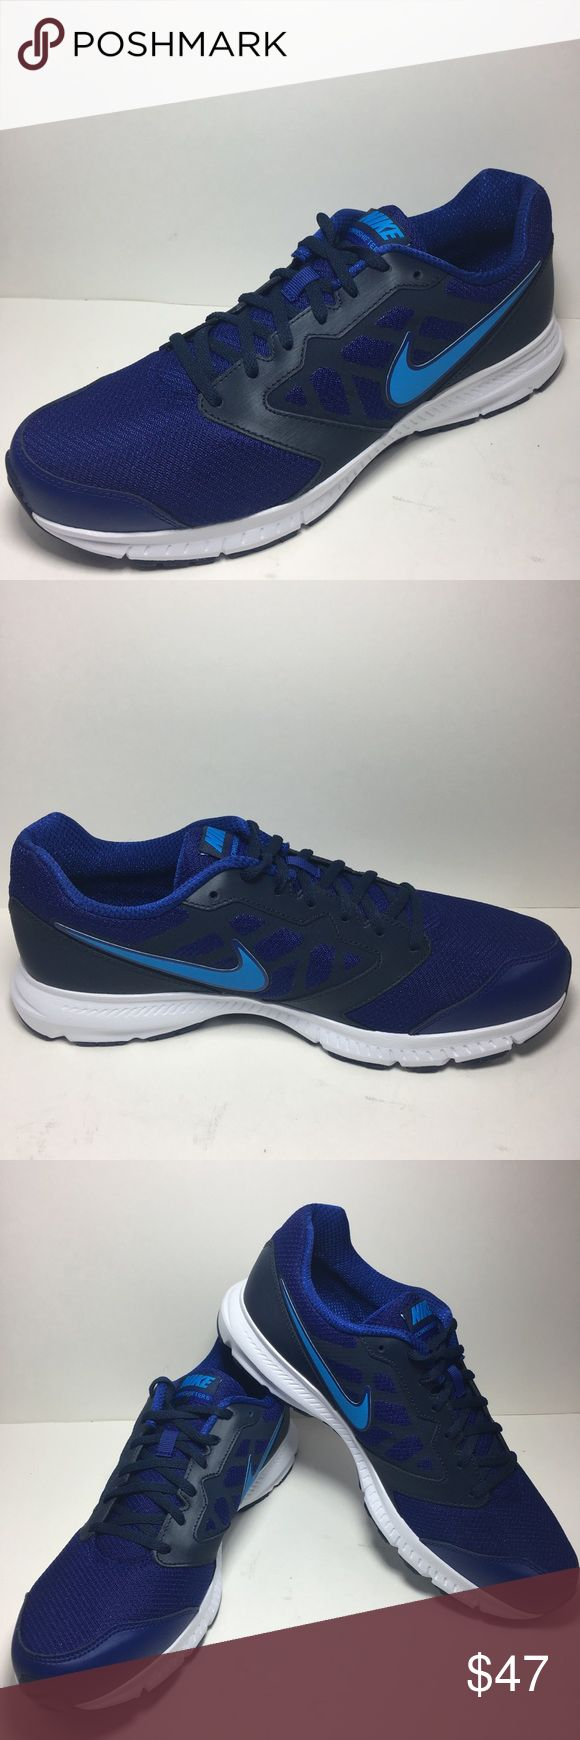 NIKE DOWNSHIFTER 6 DEEP ROYAL BLUE RUNNING Sneaker NIKE DOWNSHIFTER 6 DEEP ROYAL BLUE RUNNING SNEAKER 684652 003 100% AUTHENTIC  SIZE: 13 COLOR: Deep Royal Blue Flex grooves promote a more efficient Natural range of motion through toe-off Rubber outsole delivers durability and traction Nike Shoes Sneakers